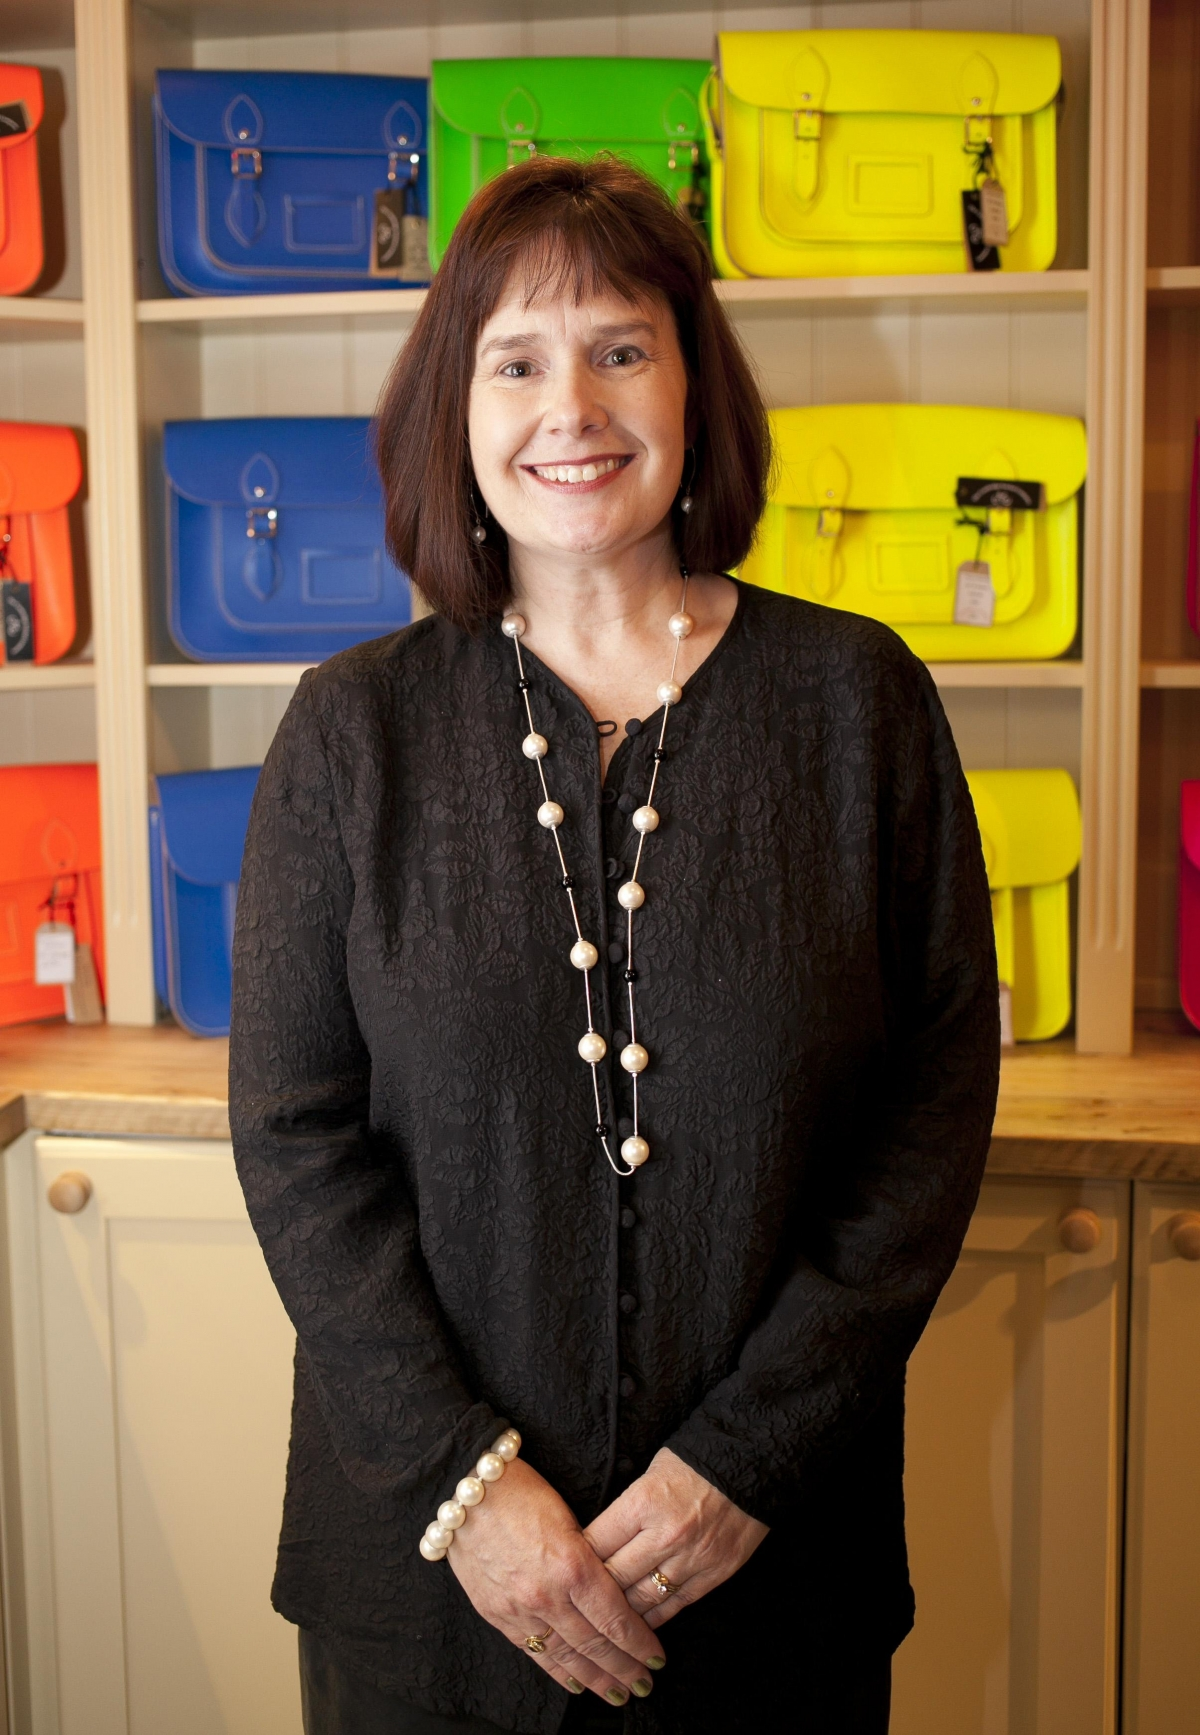 Starting off as a homemade venture, in mother-of-two Julie Deane's kitchen with the help of her mother Freda Thomas and a modest £600 budget, The Cambridge Satchel Company was created.